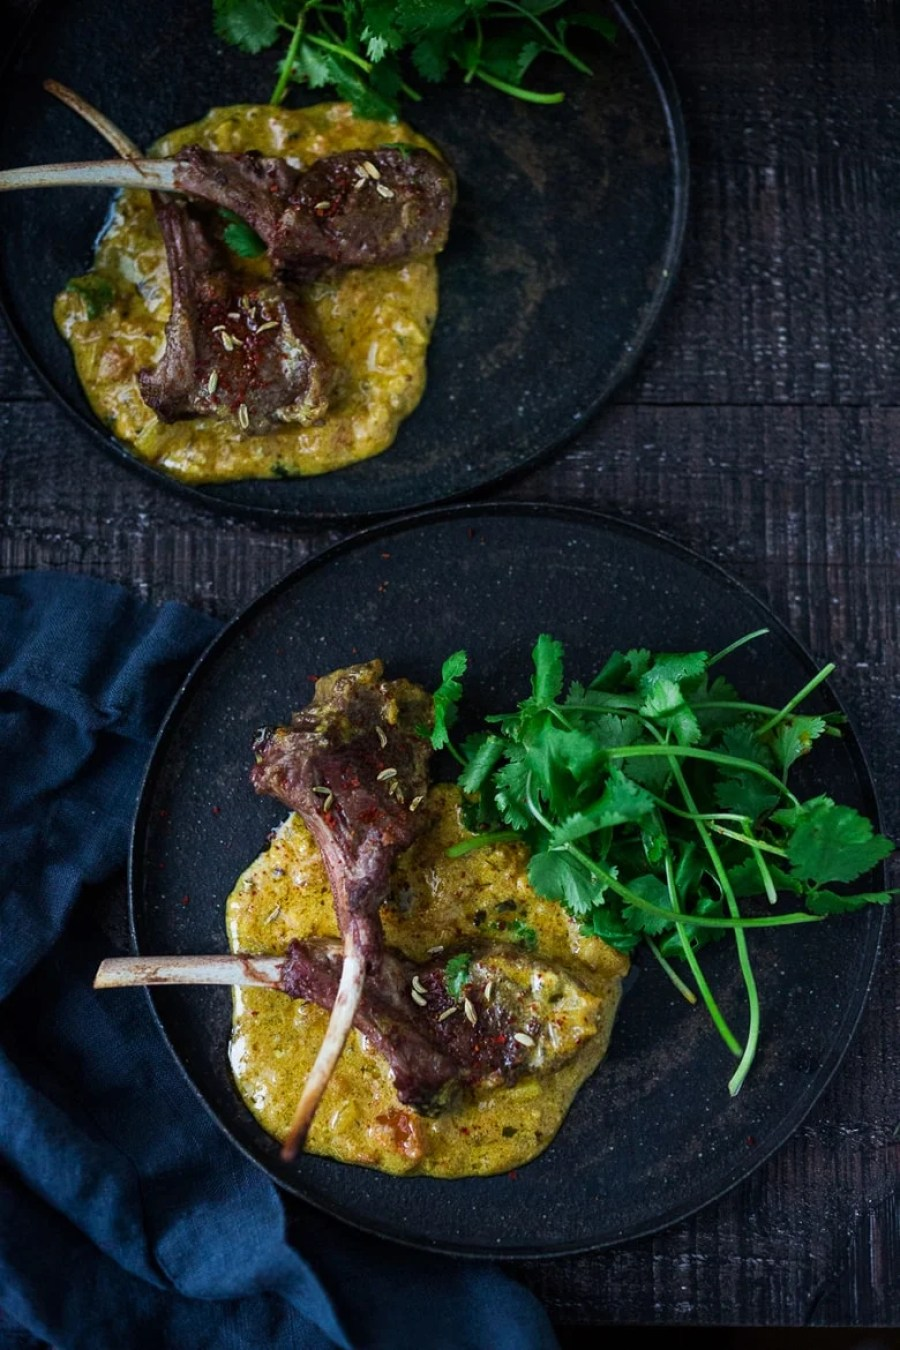 An incredibly delicious recipe for Roasted Lamb Chops with Indian Fenugreek Sauce, perfect for romantic dinners or entertaining at home. Fragrant & Flavorful! | www.feastingathome.com